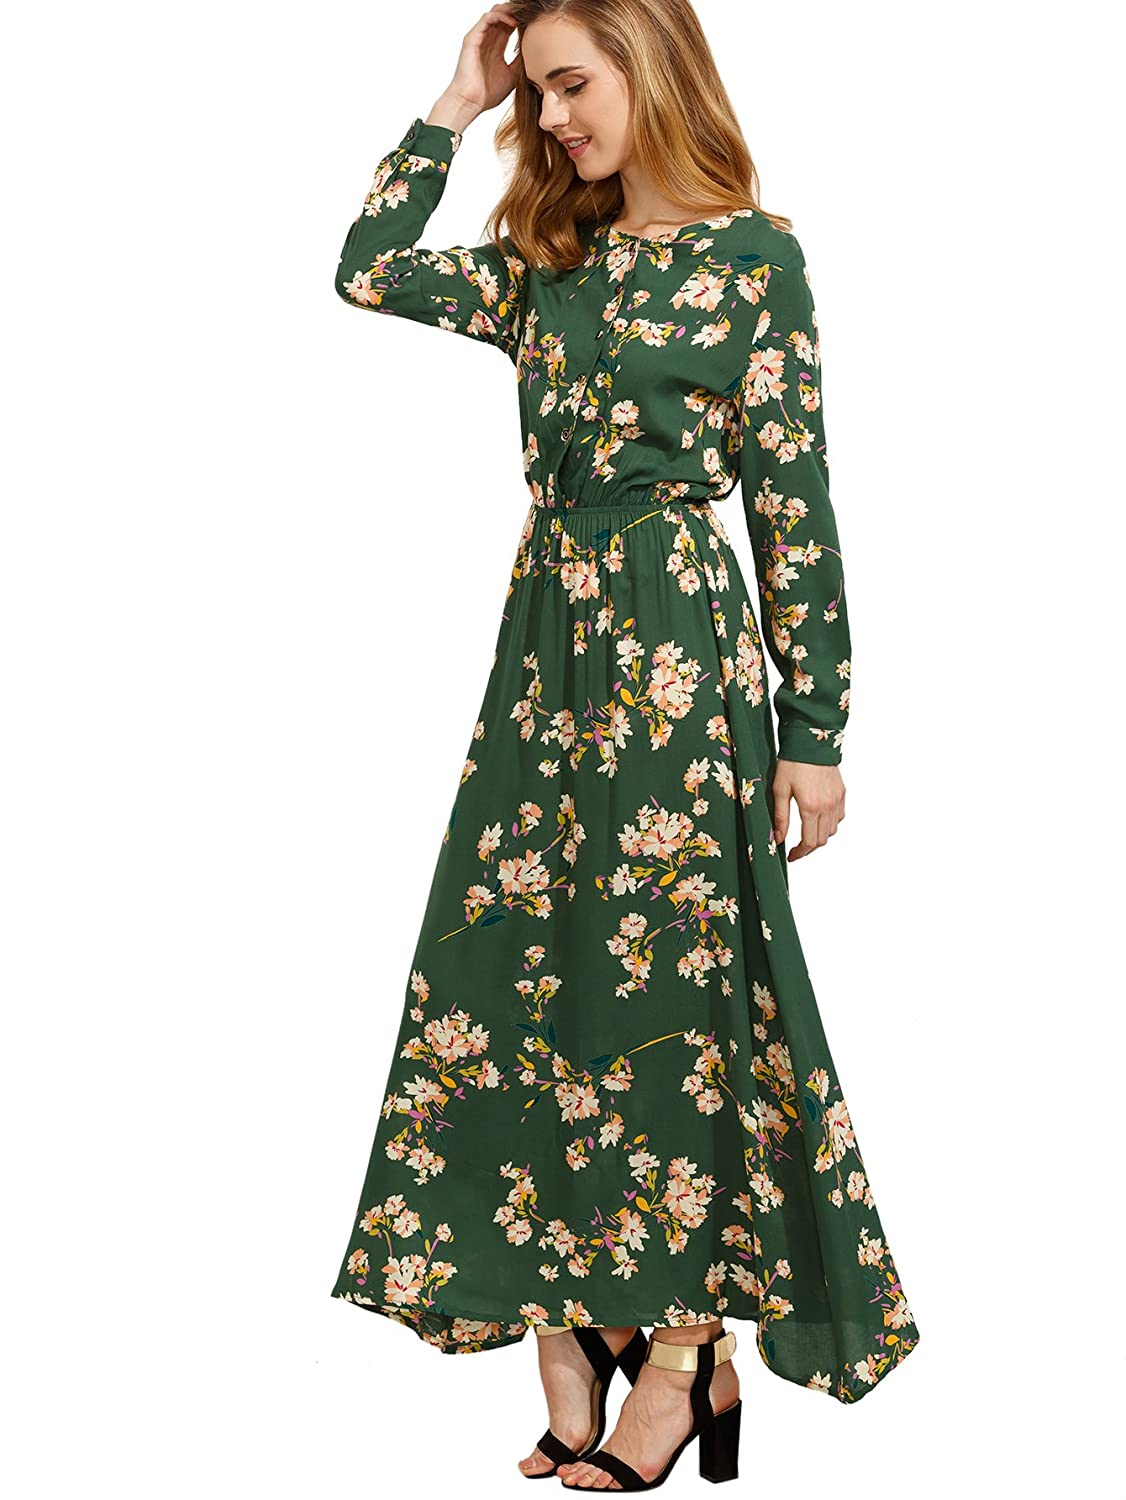 Victorian Plus Size Dresses | Edwardian Clothing, Costumes Floerns Womens Long Sleeve Floral Print Button Casual Maxi Dress $39.99 AT vintagedancer.com